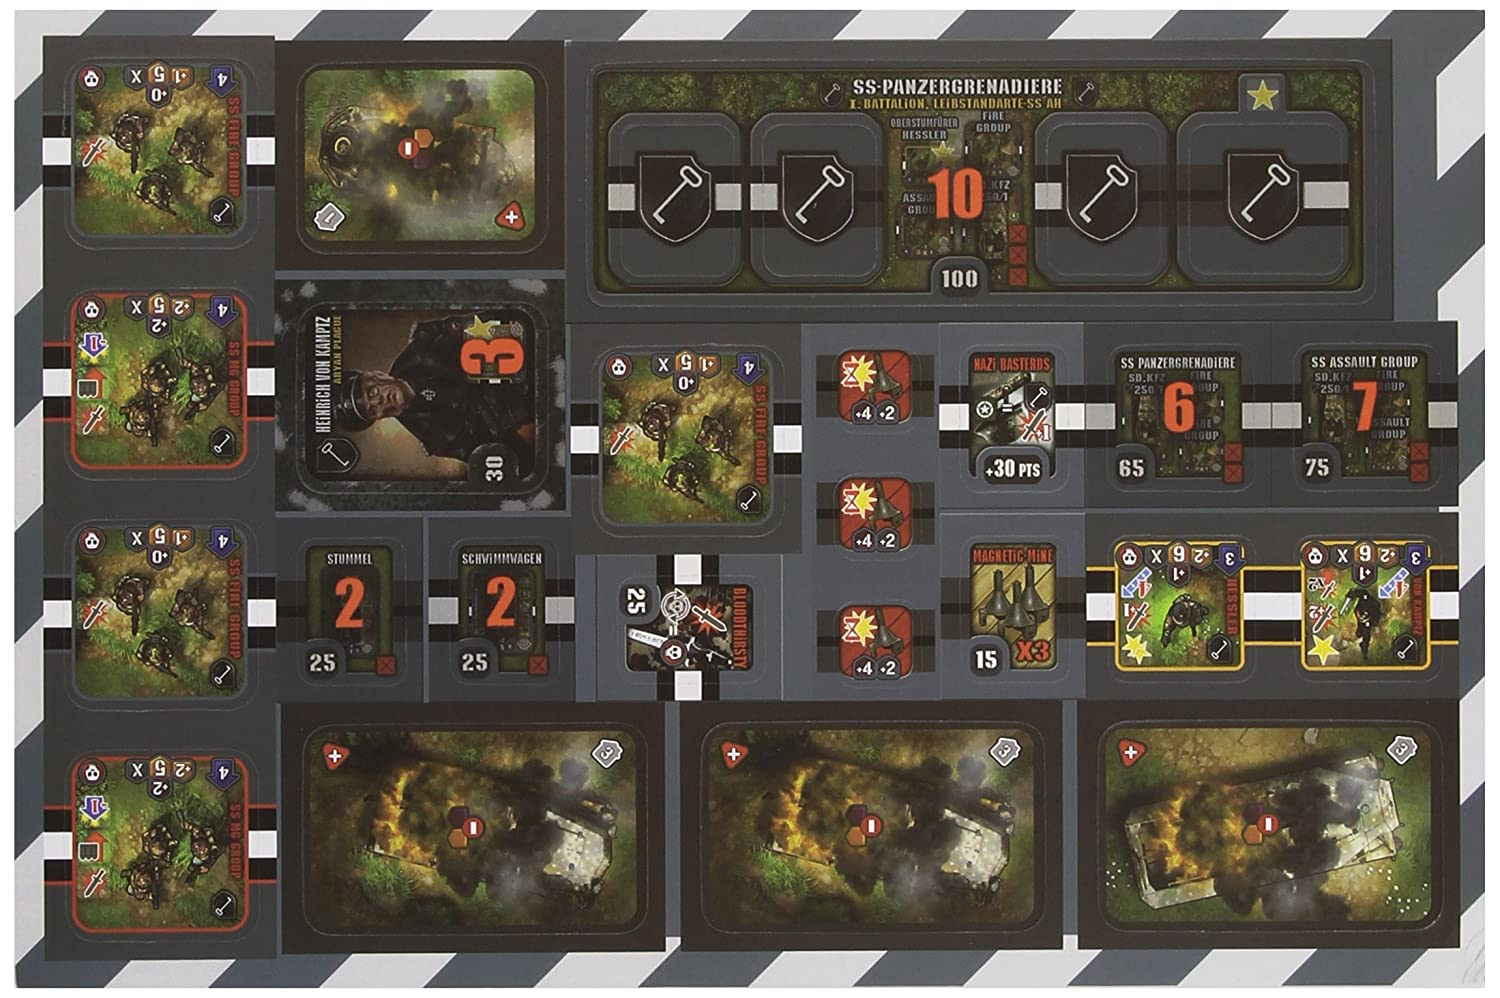 GE SS Panzergrenadier Board Game Flat River Group 58008 IELLO Heroes of Normandie